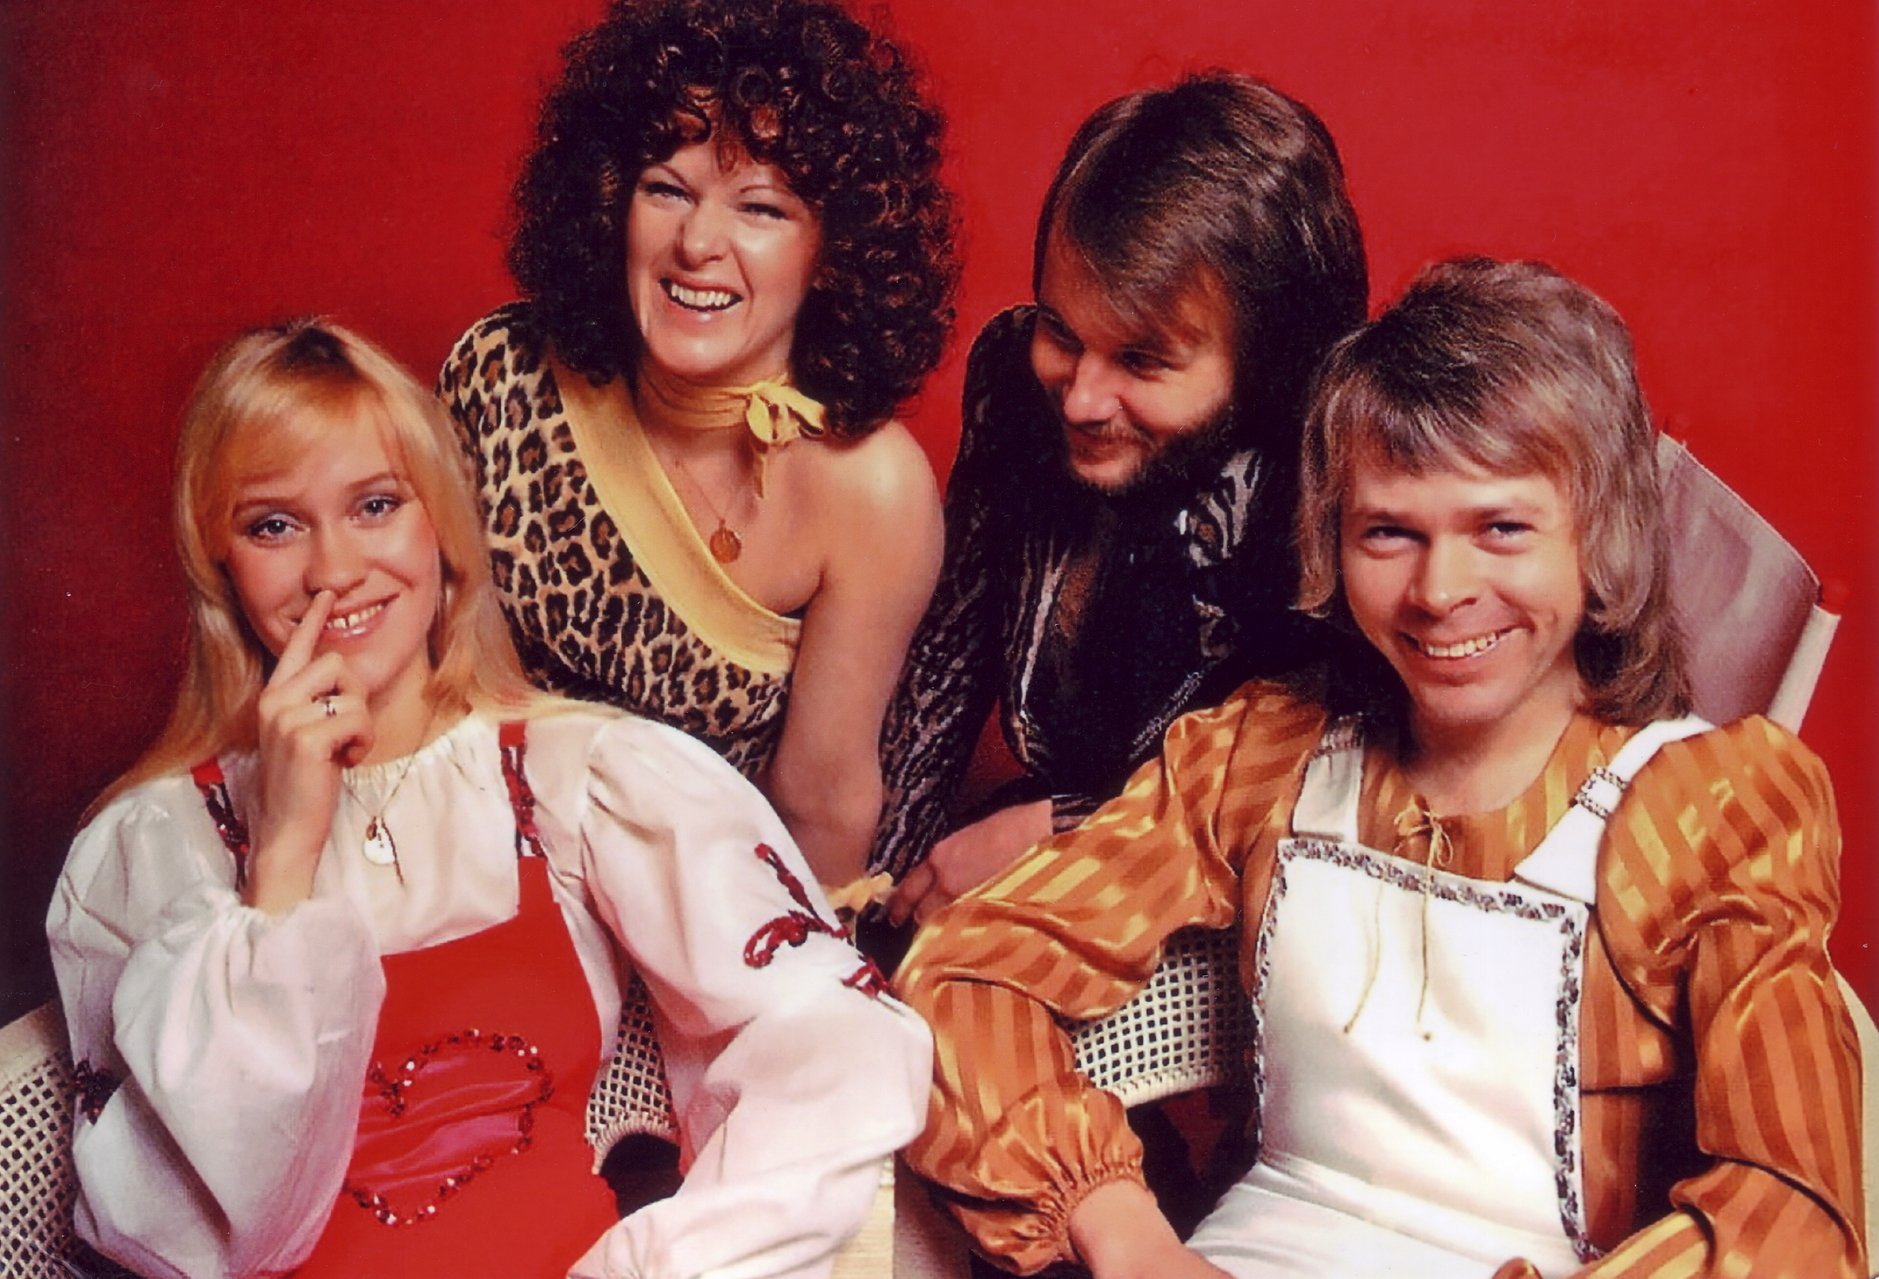 abba_agnetha_picks_nose